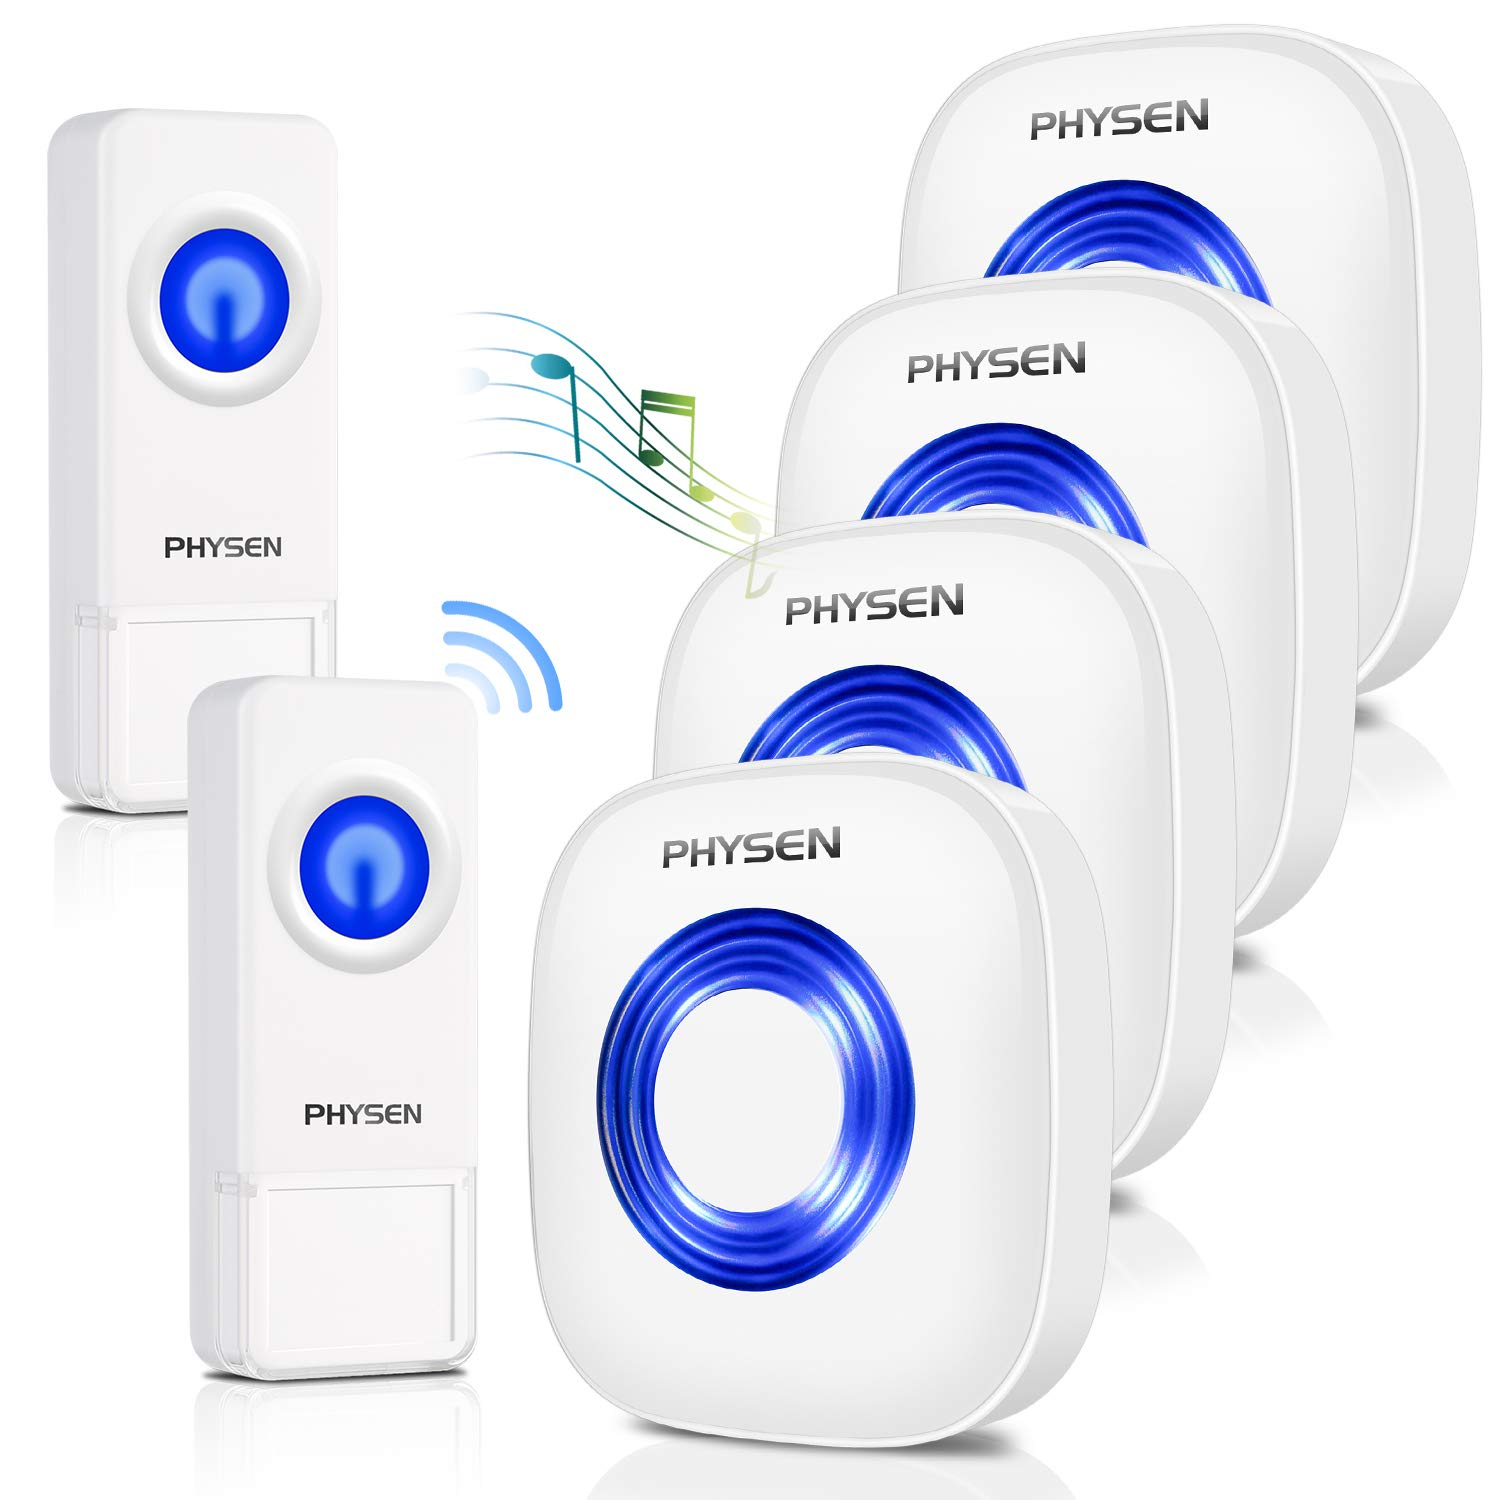 Physen Model CW Waterproof Wireless Doorbell kit with 2 Push Buttons and 4 Plugin Receivers,Operating at 1000 feet Long Range,4 Volume Levels and 52 Melodies Chimes,No Battery Required for Receiver